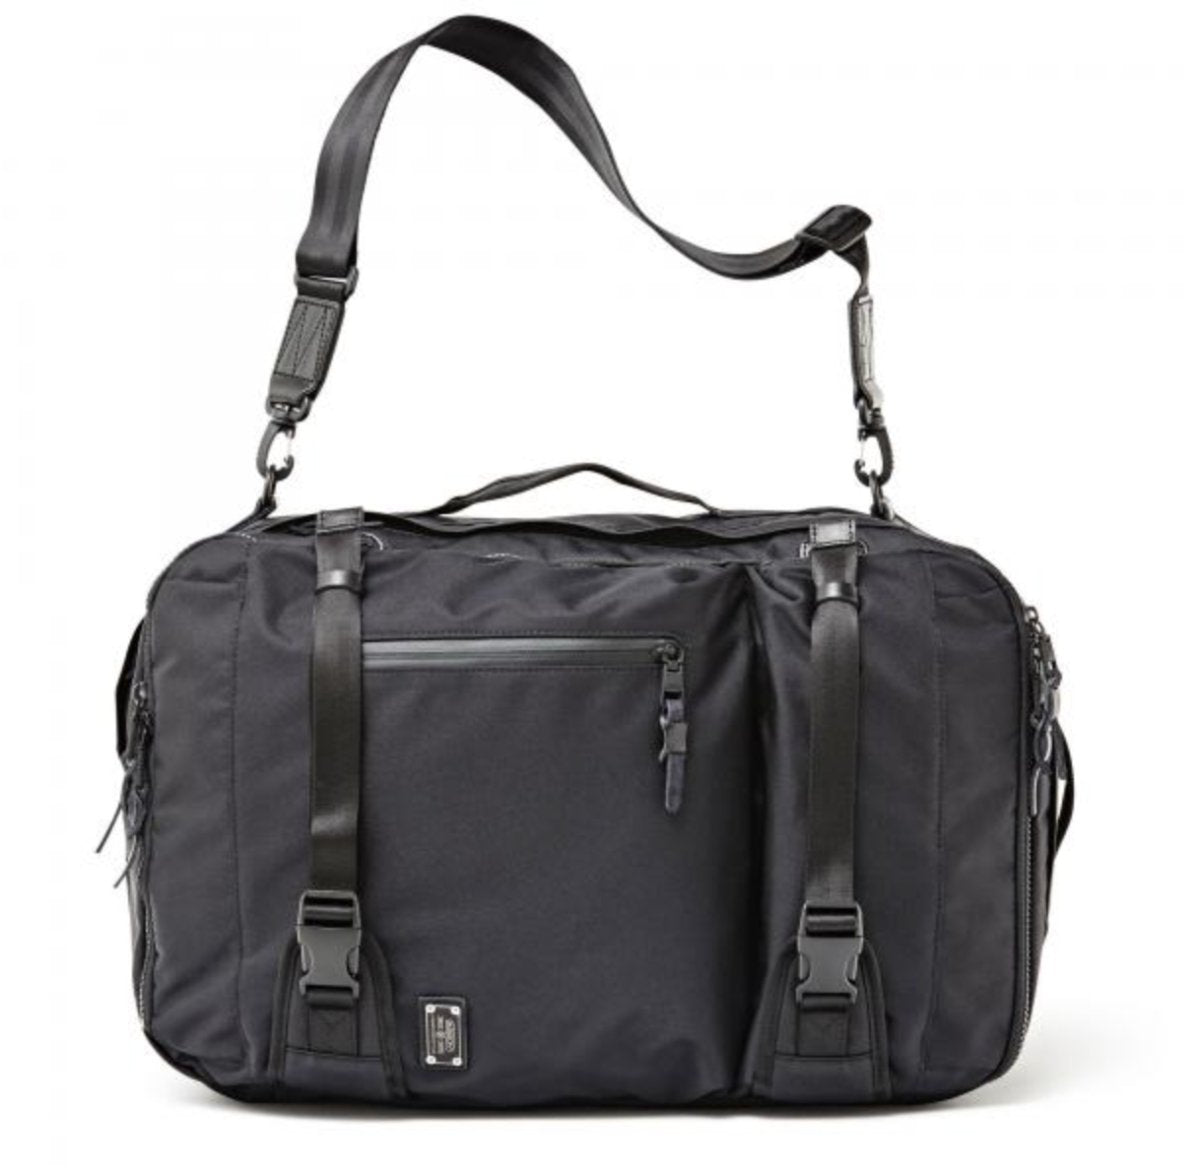 POLYESTER CORDURA 305D 3 WAY BAG F